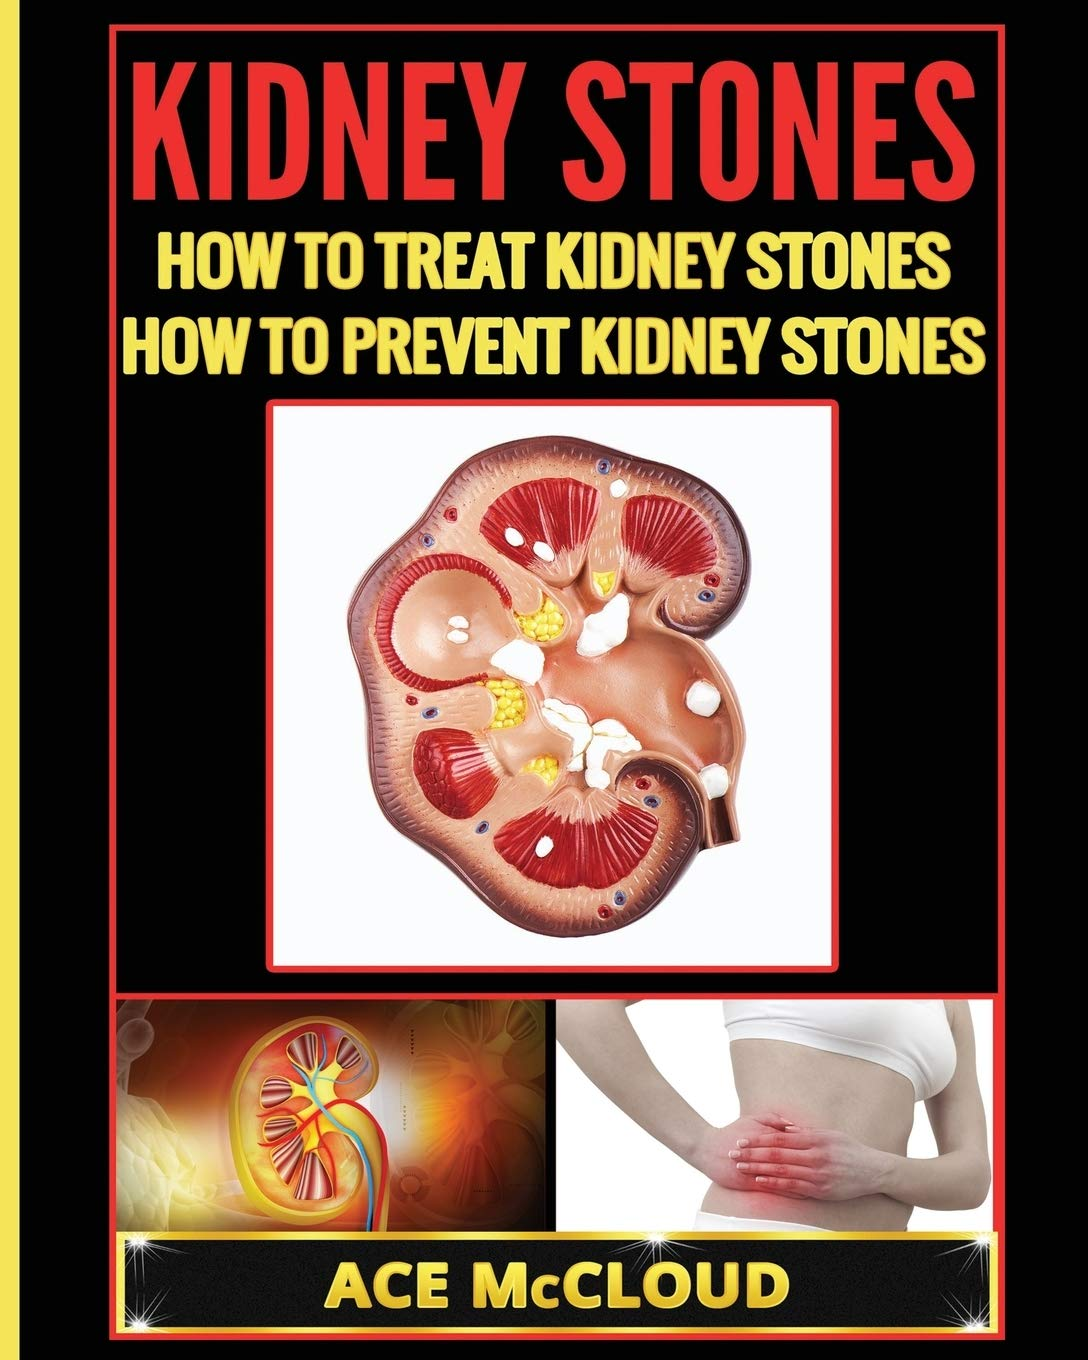 Kidney Stones How To Treat Kidney Stones How To Prevent Kidney Stones Kidney Stone Treatment Prevention Guide With All Amazon Co Uk Mccloud Ace 9781640480469 Books